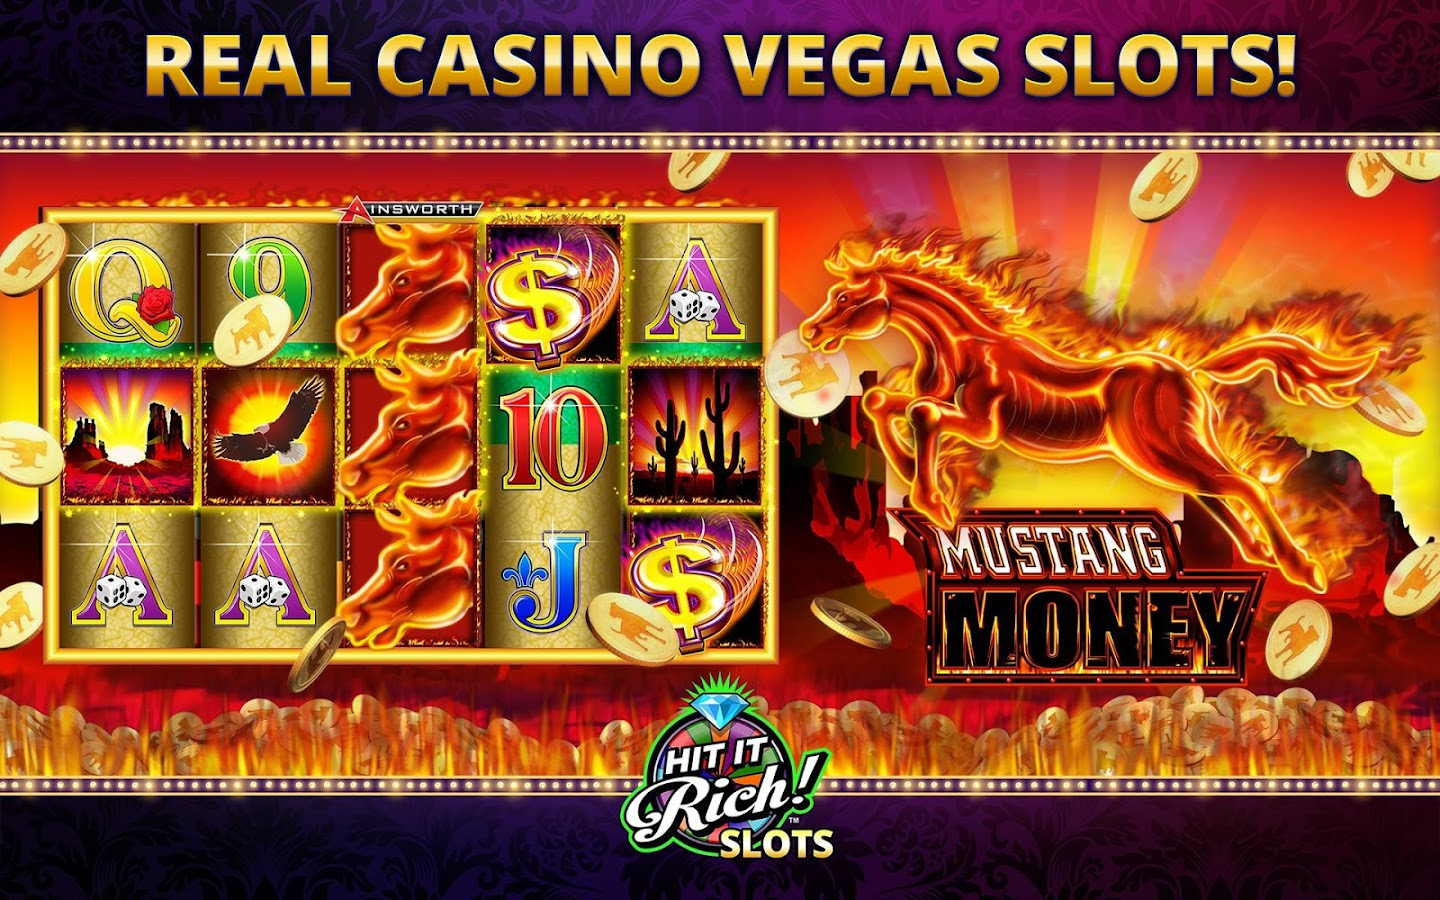 Hit It Rich Casino Slots Hack Download